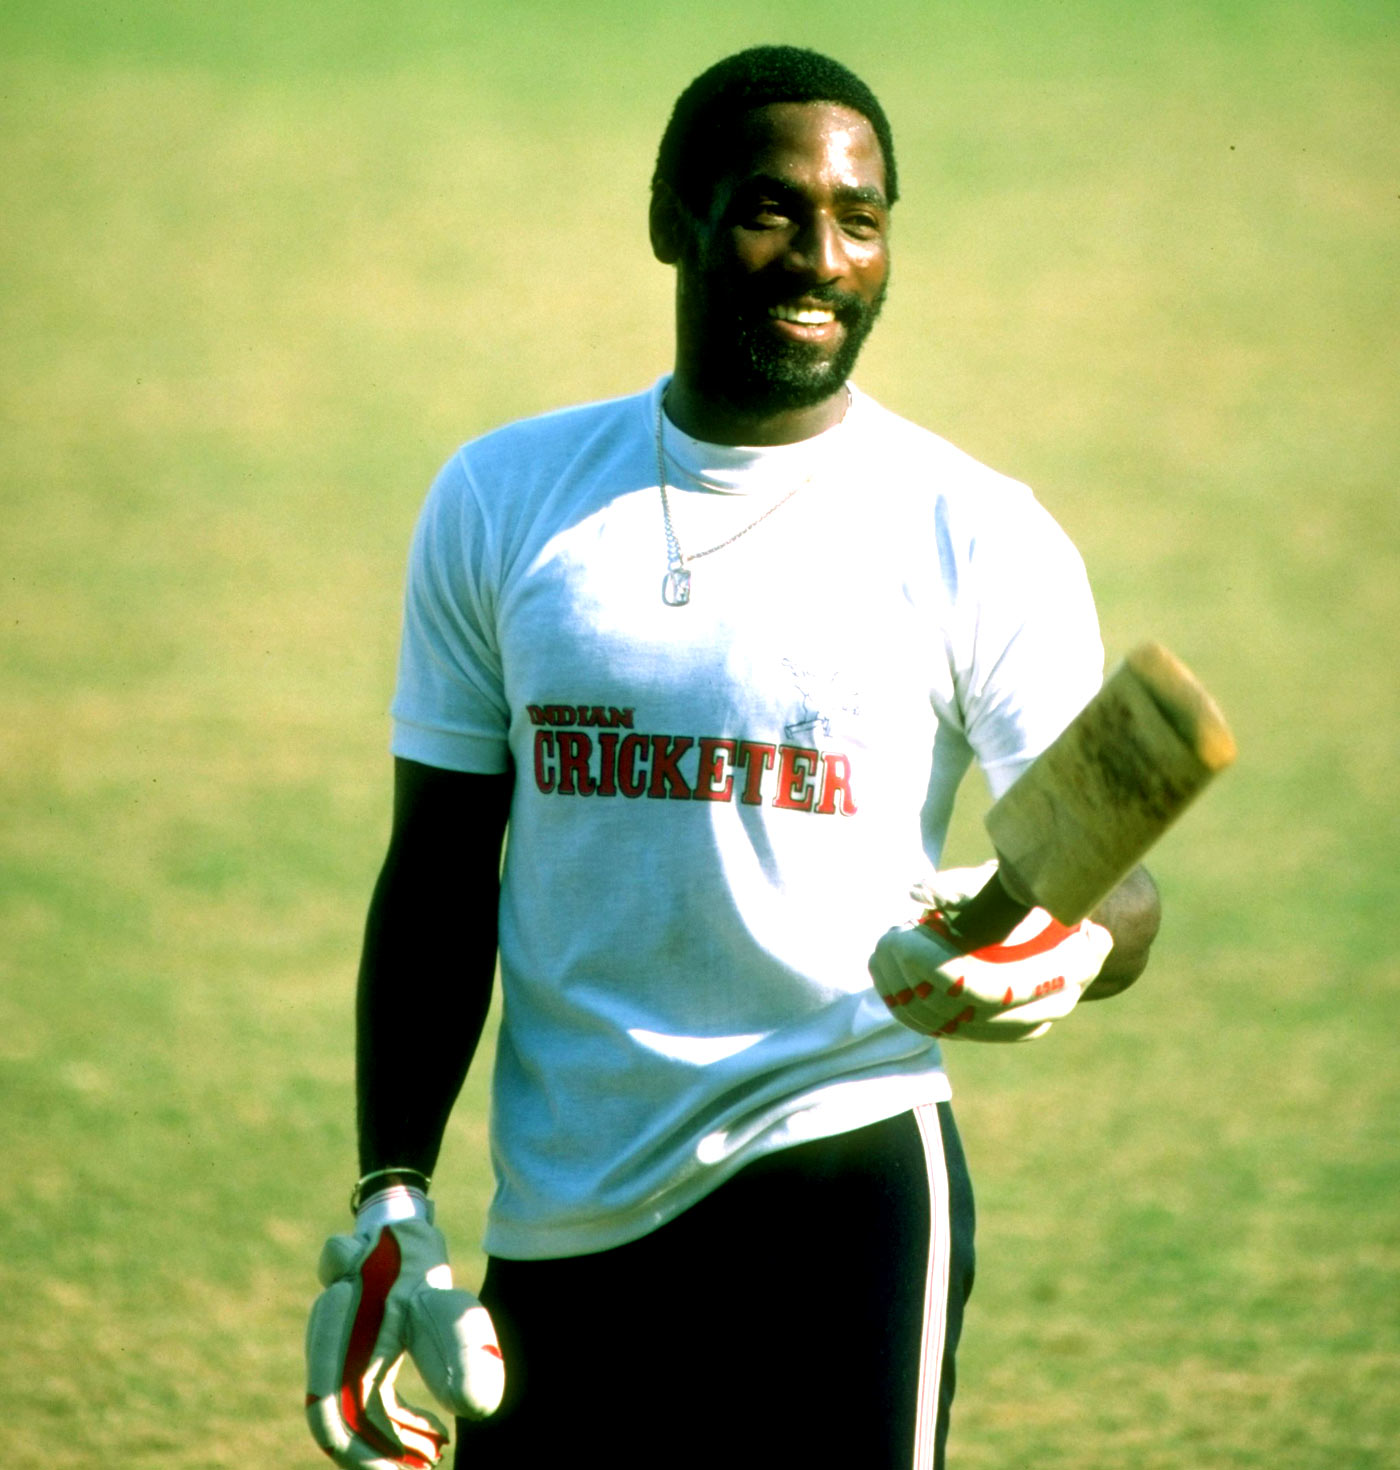 He got game: Richards lorded it over the one-day format as if it had been designed for him